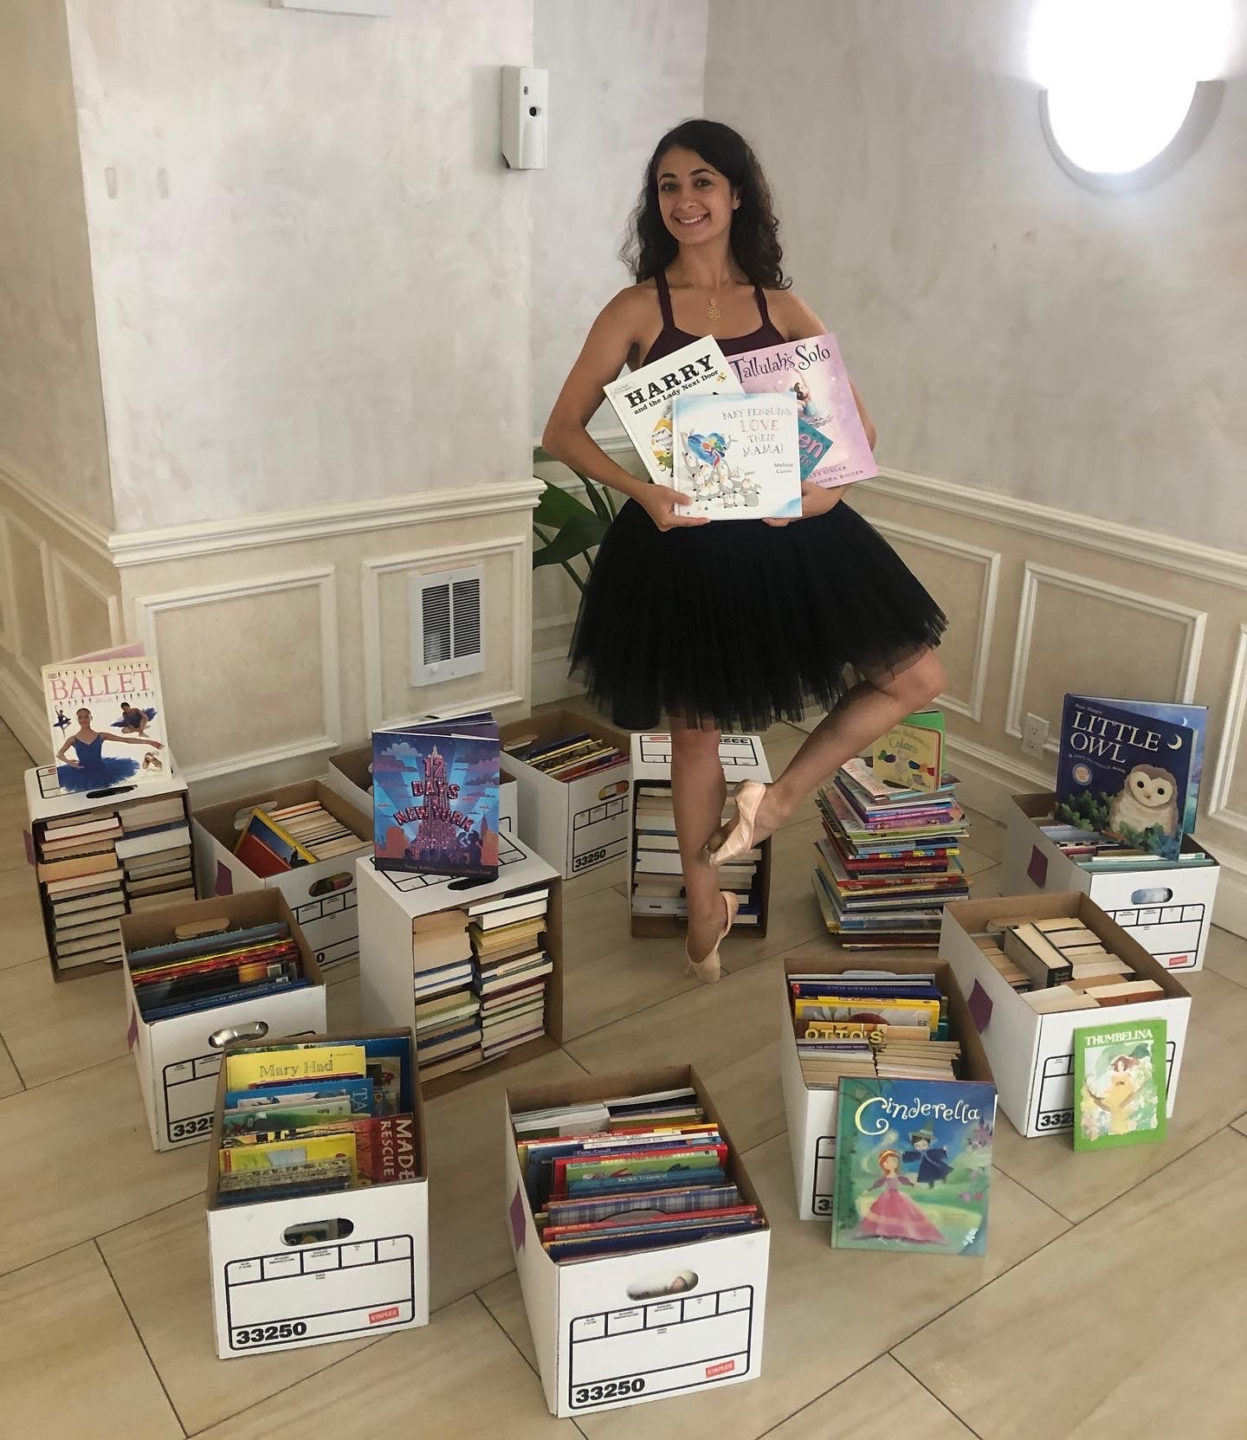 Lauren Bonfiglio with books collected for her ABT book drive.